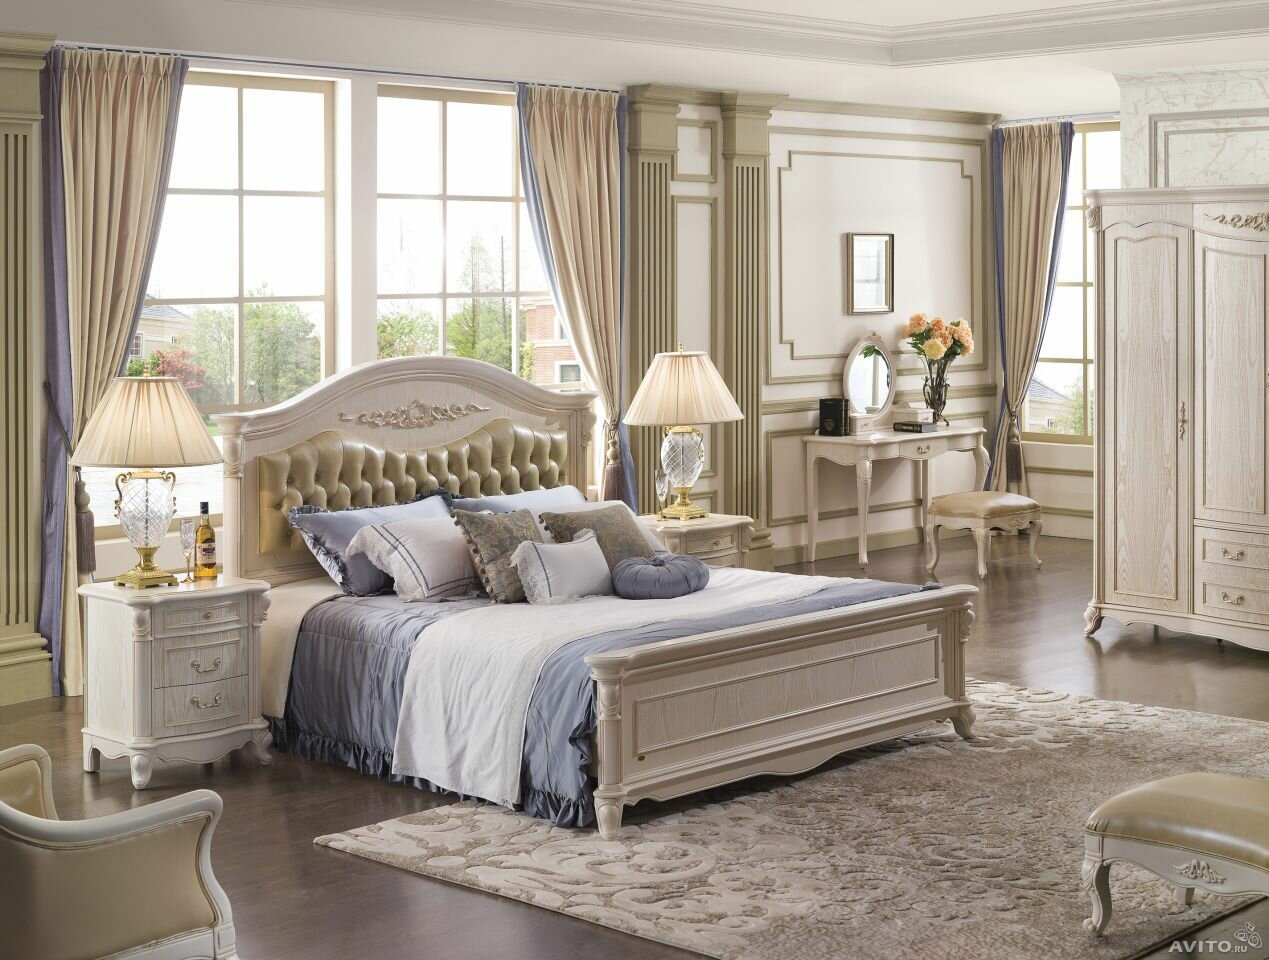 15 world 39 s most beautiful bedrooms mostbeautifulthings for Beautiful bedrooms